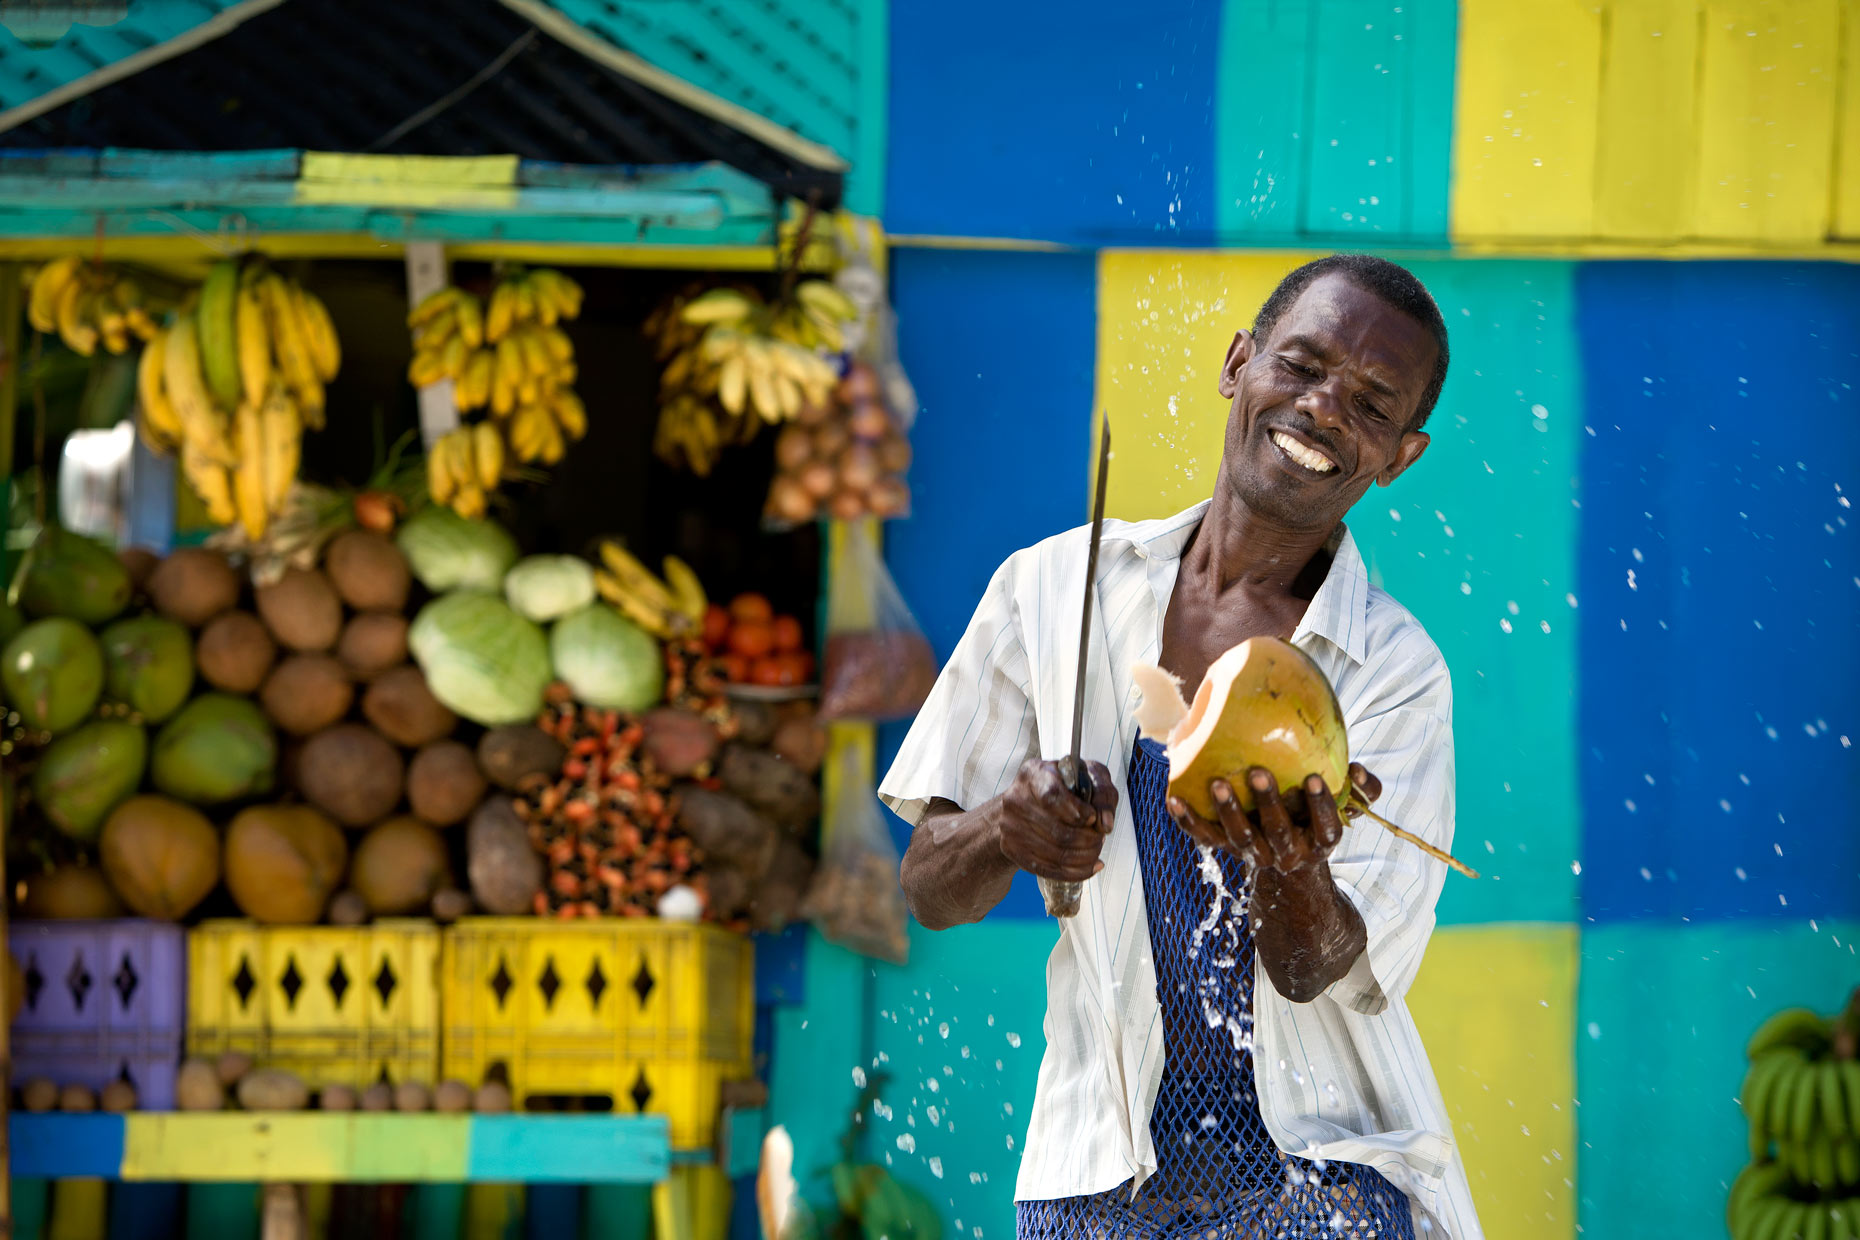 man cutting coconut on street in Jamaica